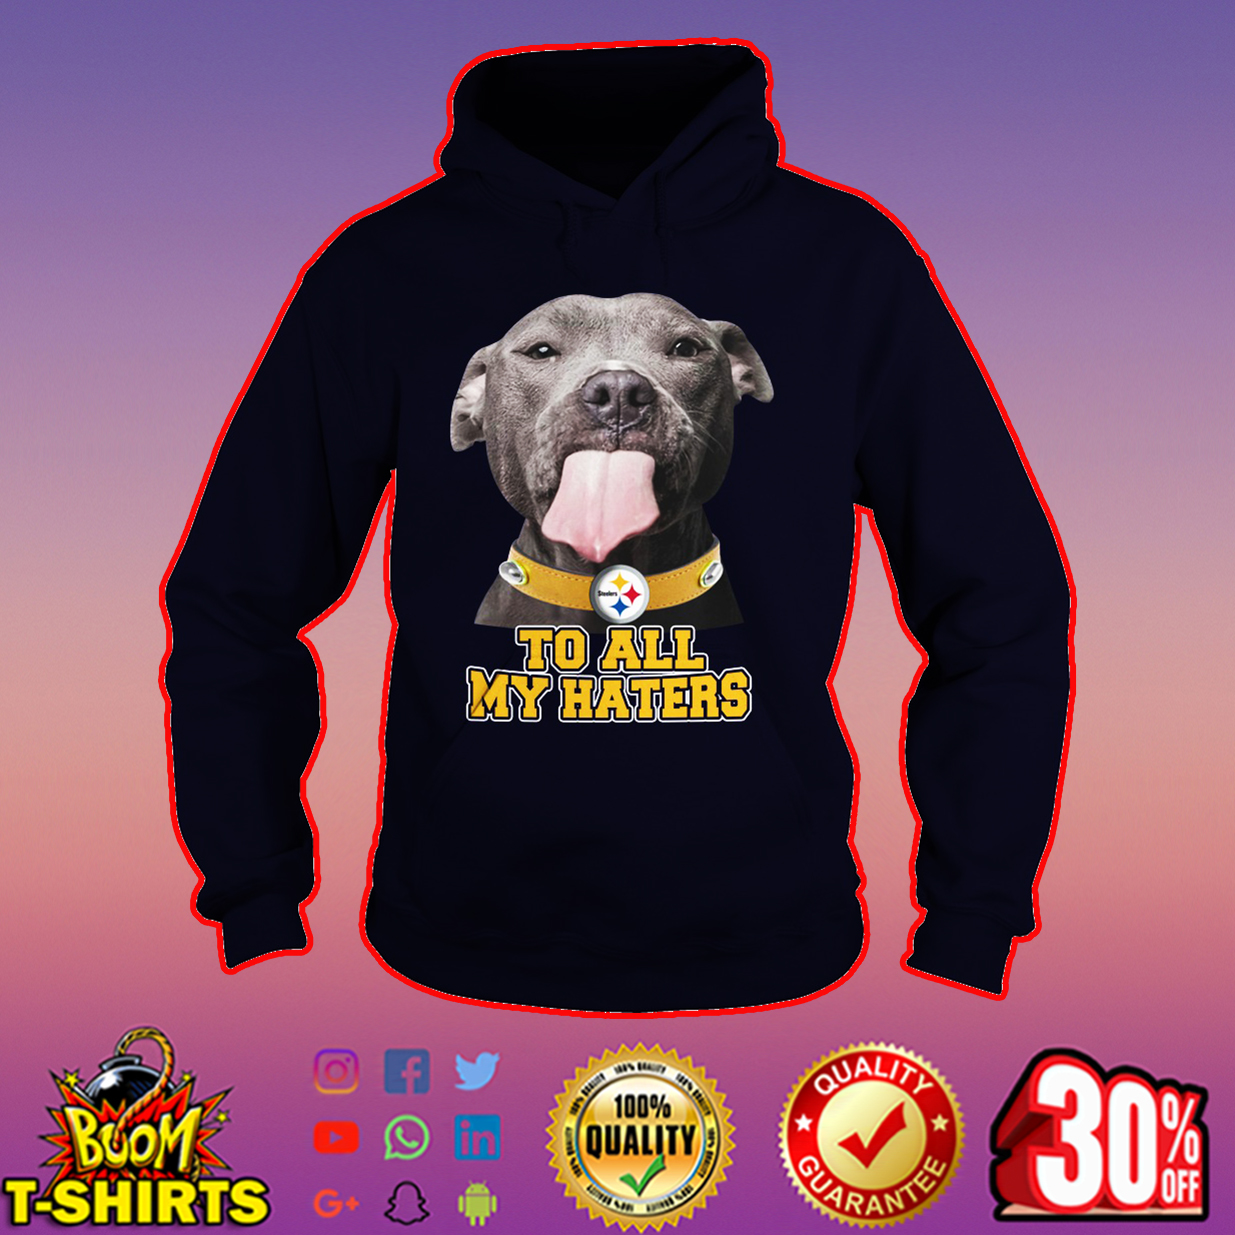 Pitbull Steelers too all my haters hoodie